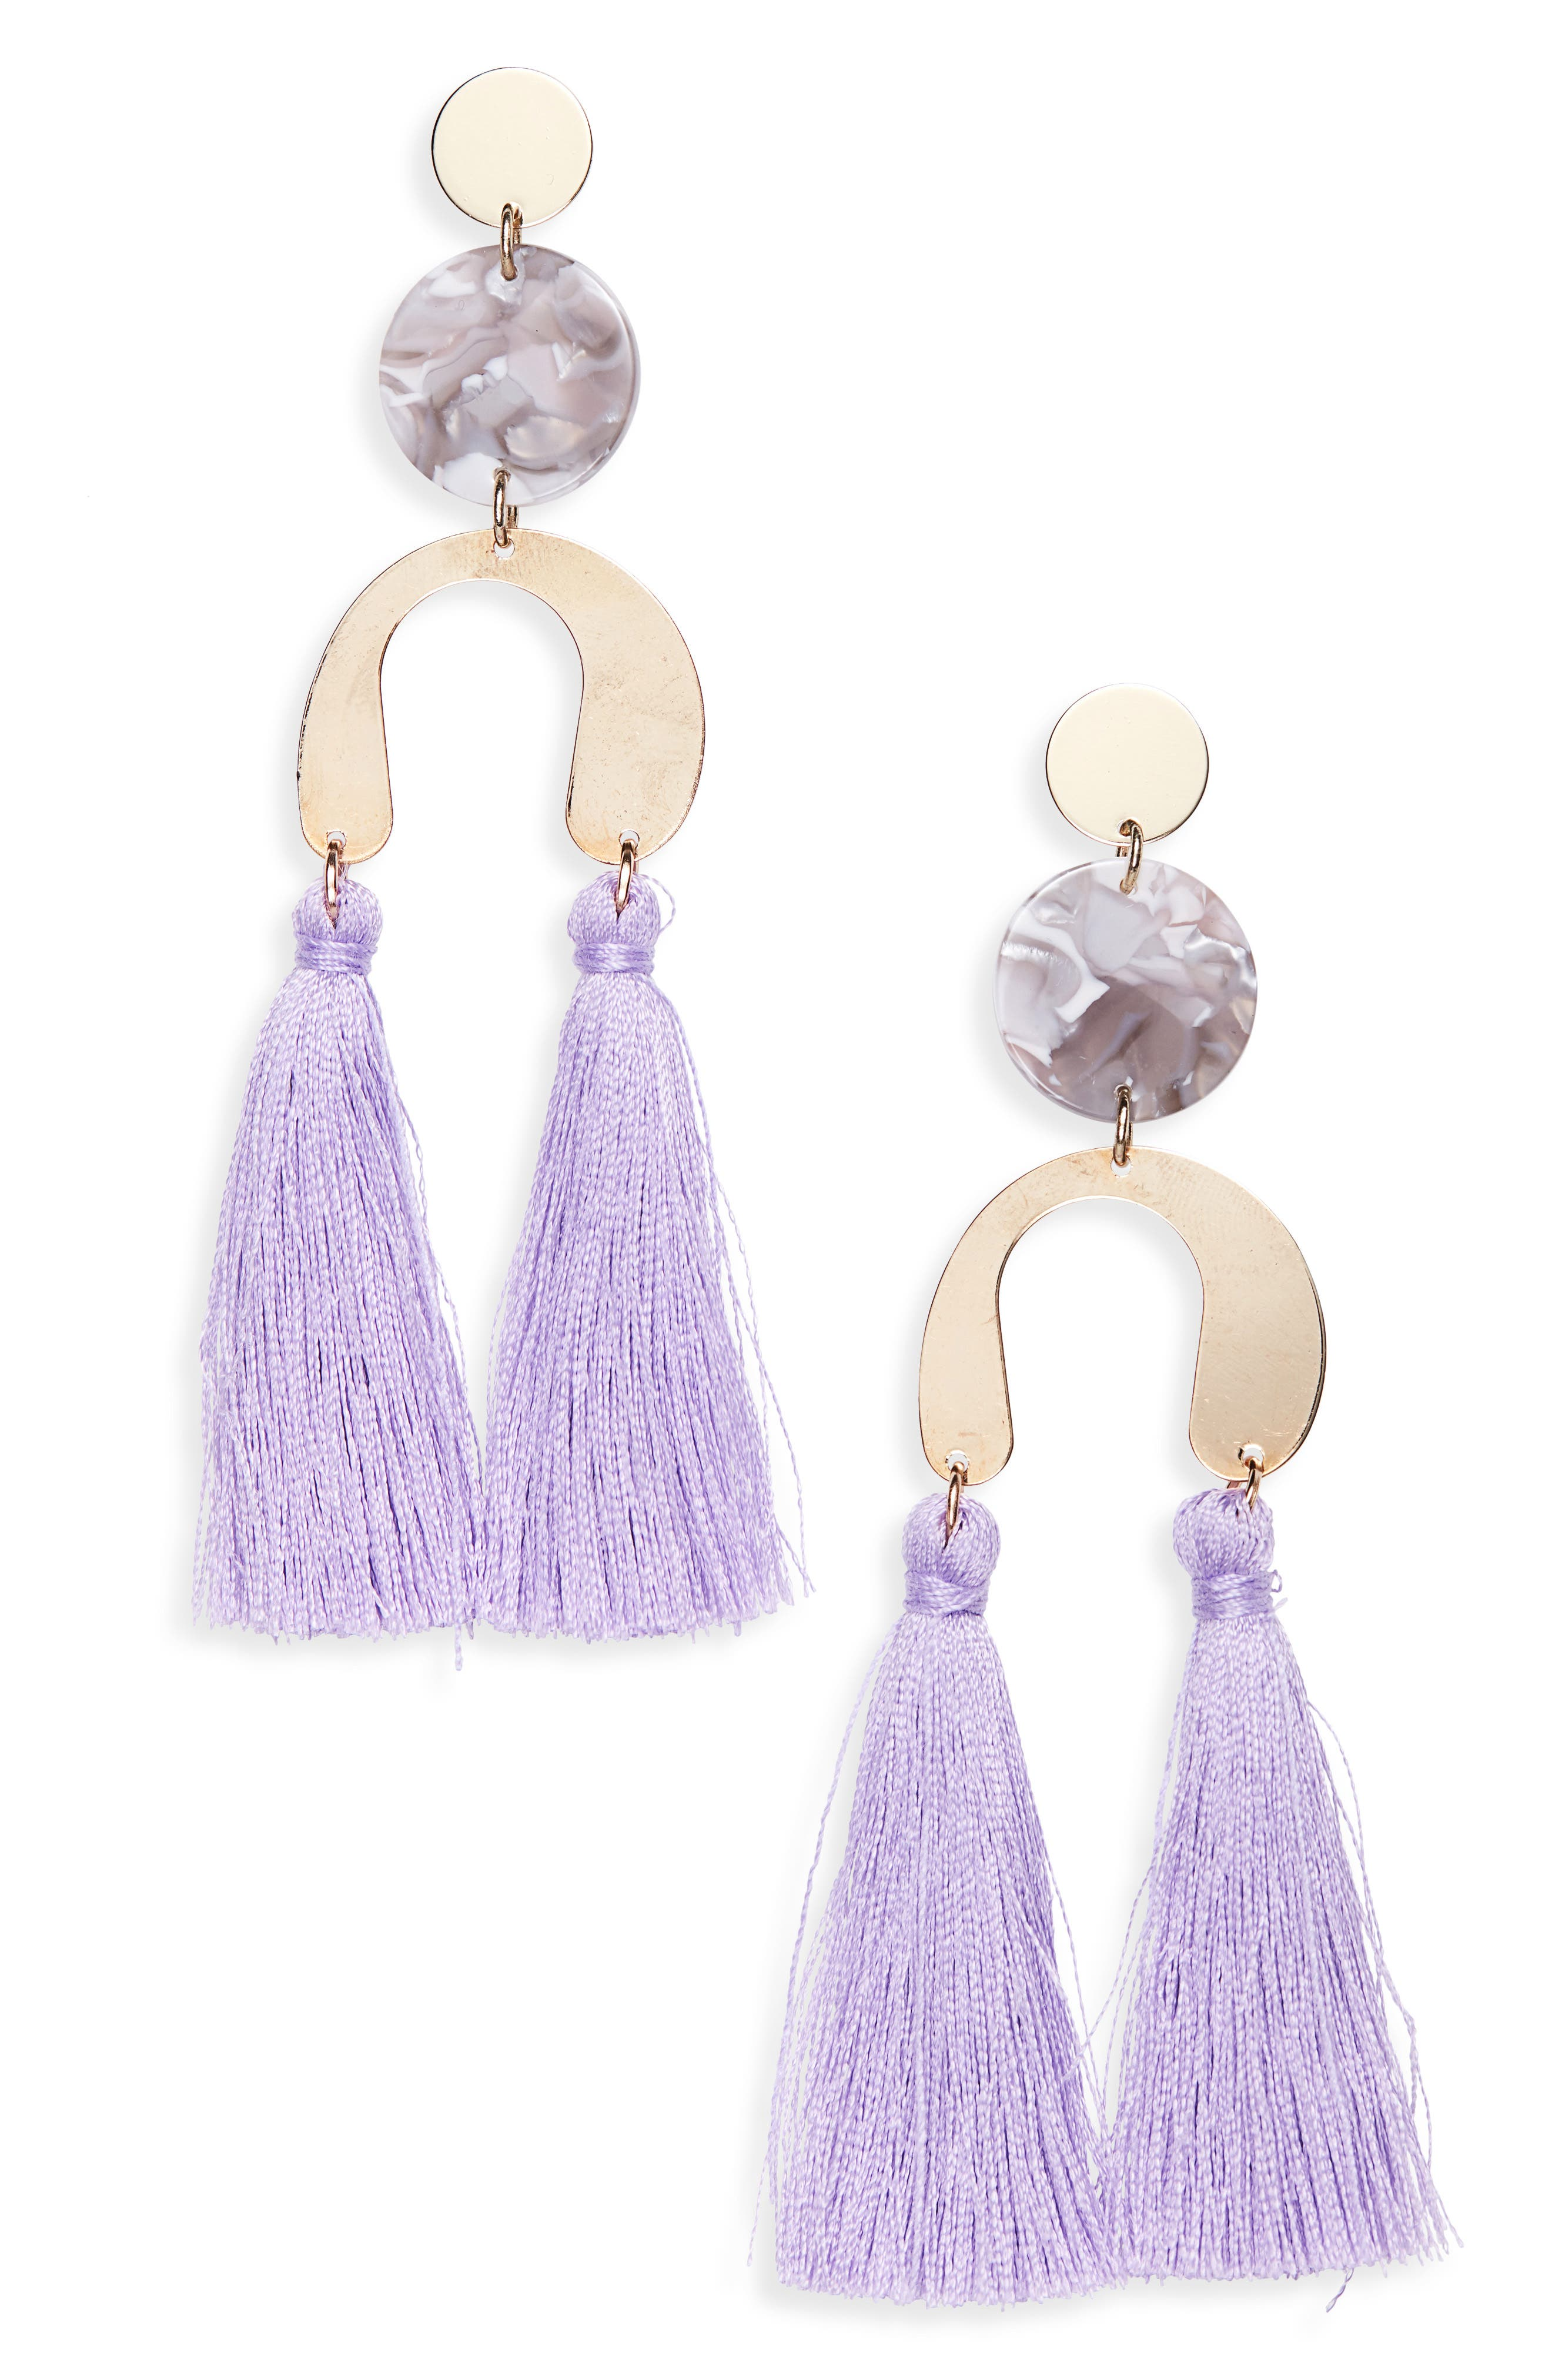 NEW FRIENDS COLONY Stella Fringe Earrings in Gold/ Lilac